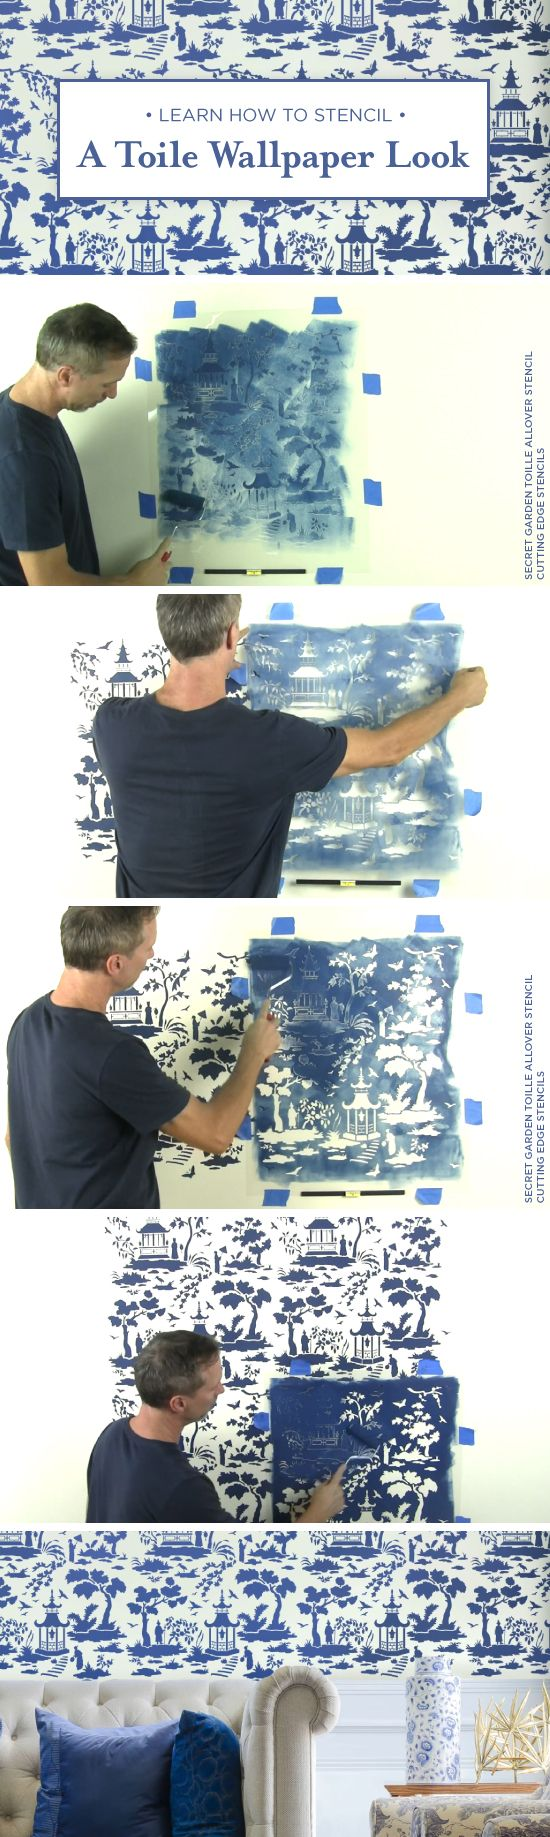 Cutting Edge Stencils shares a stencil tutorial on how to recreate a chinoiserie wallpaper look using the Secret Garden Toile wall pattern. http://www.cuttingedgestencils.com/garden-toile-stencil-chinoiserie-wallpaper.html